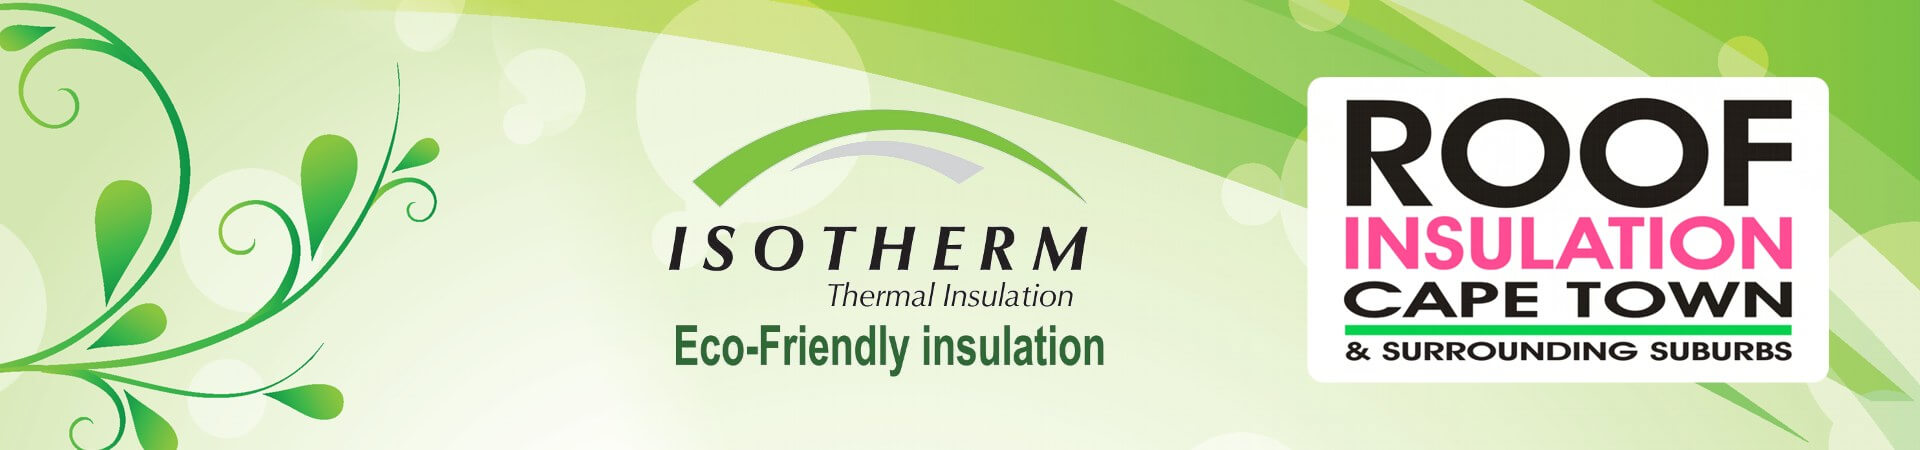 Eco friendly insulation isotherm ceiling insulation dust for Eco friendly house insulation